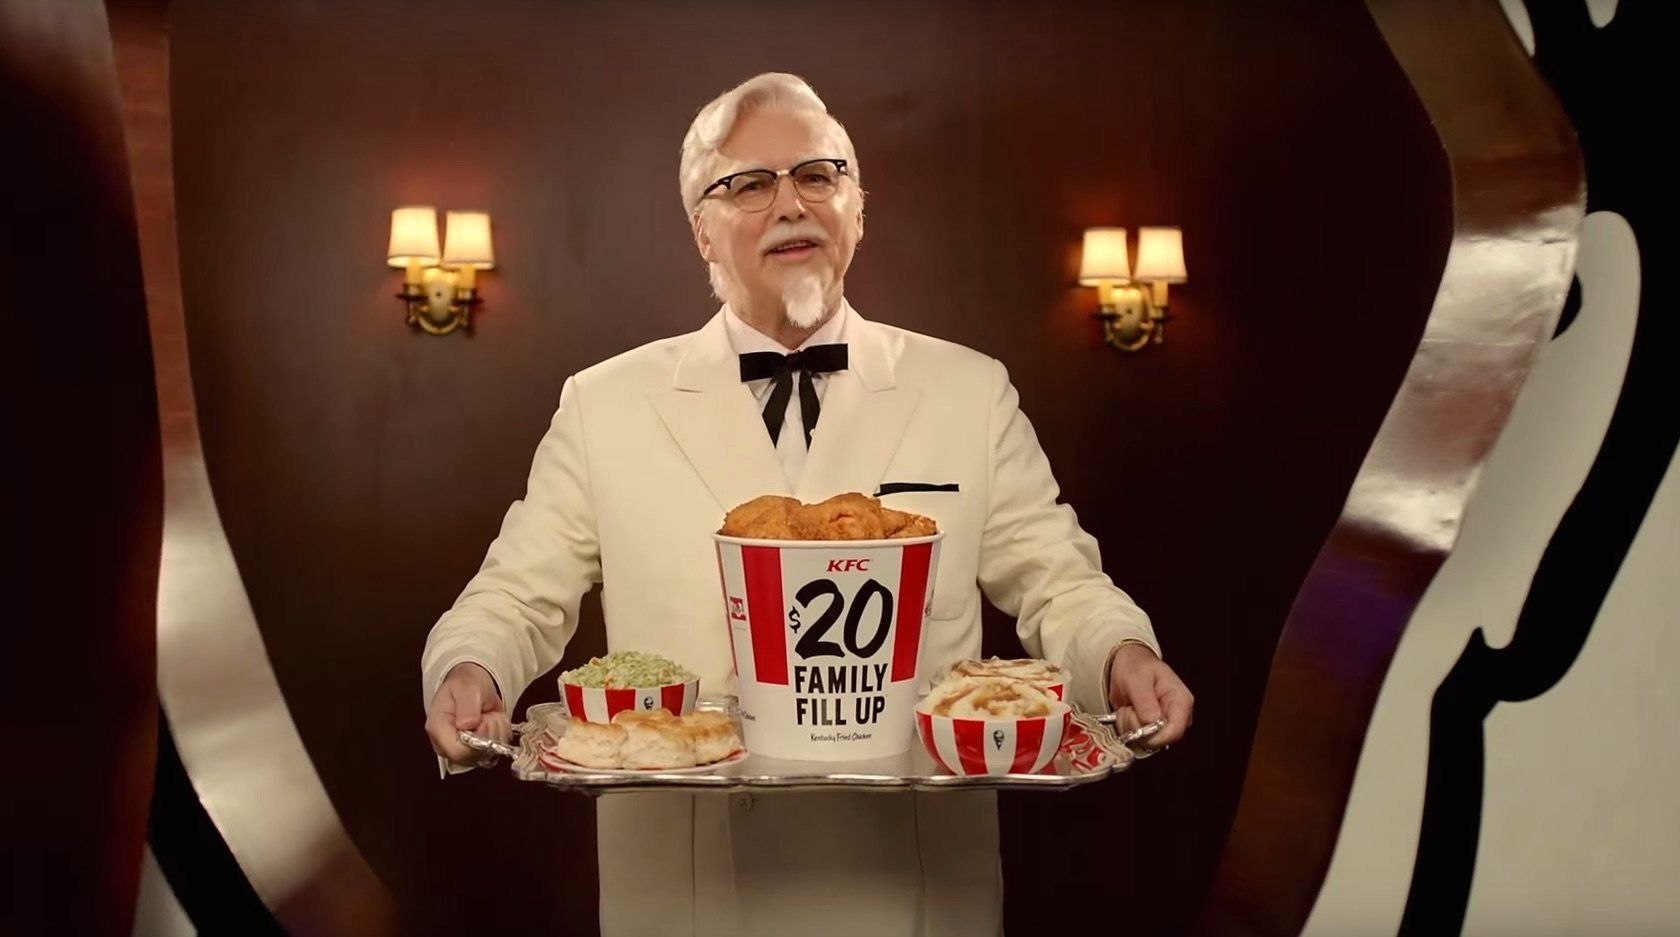 Norm Macdonald as Col. Sanders.